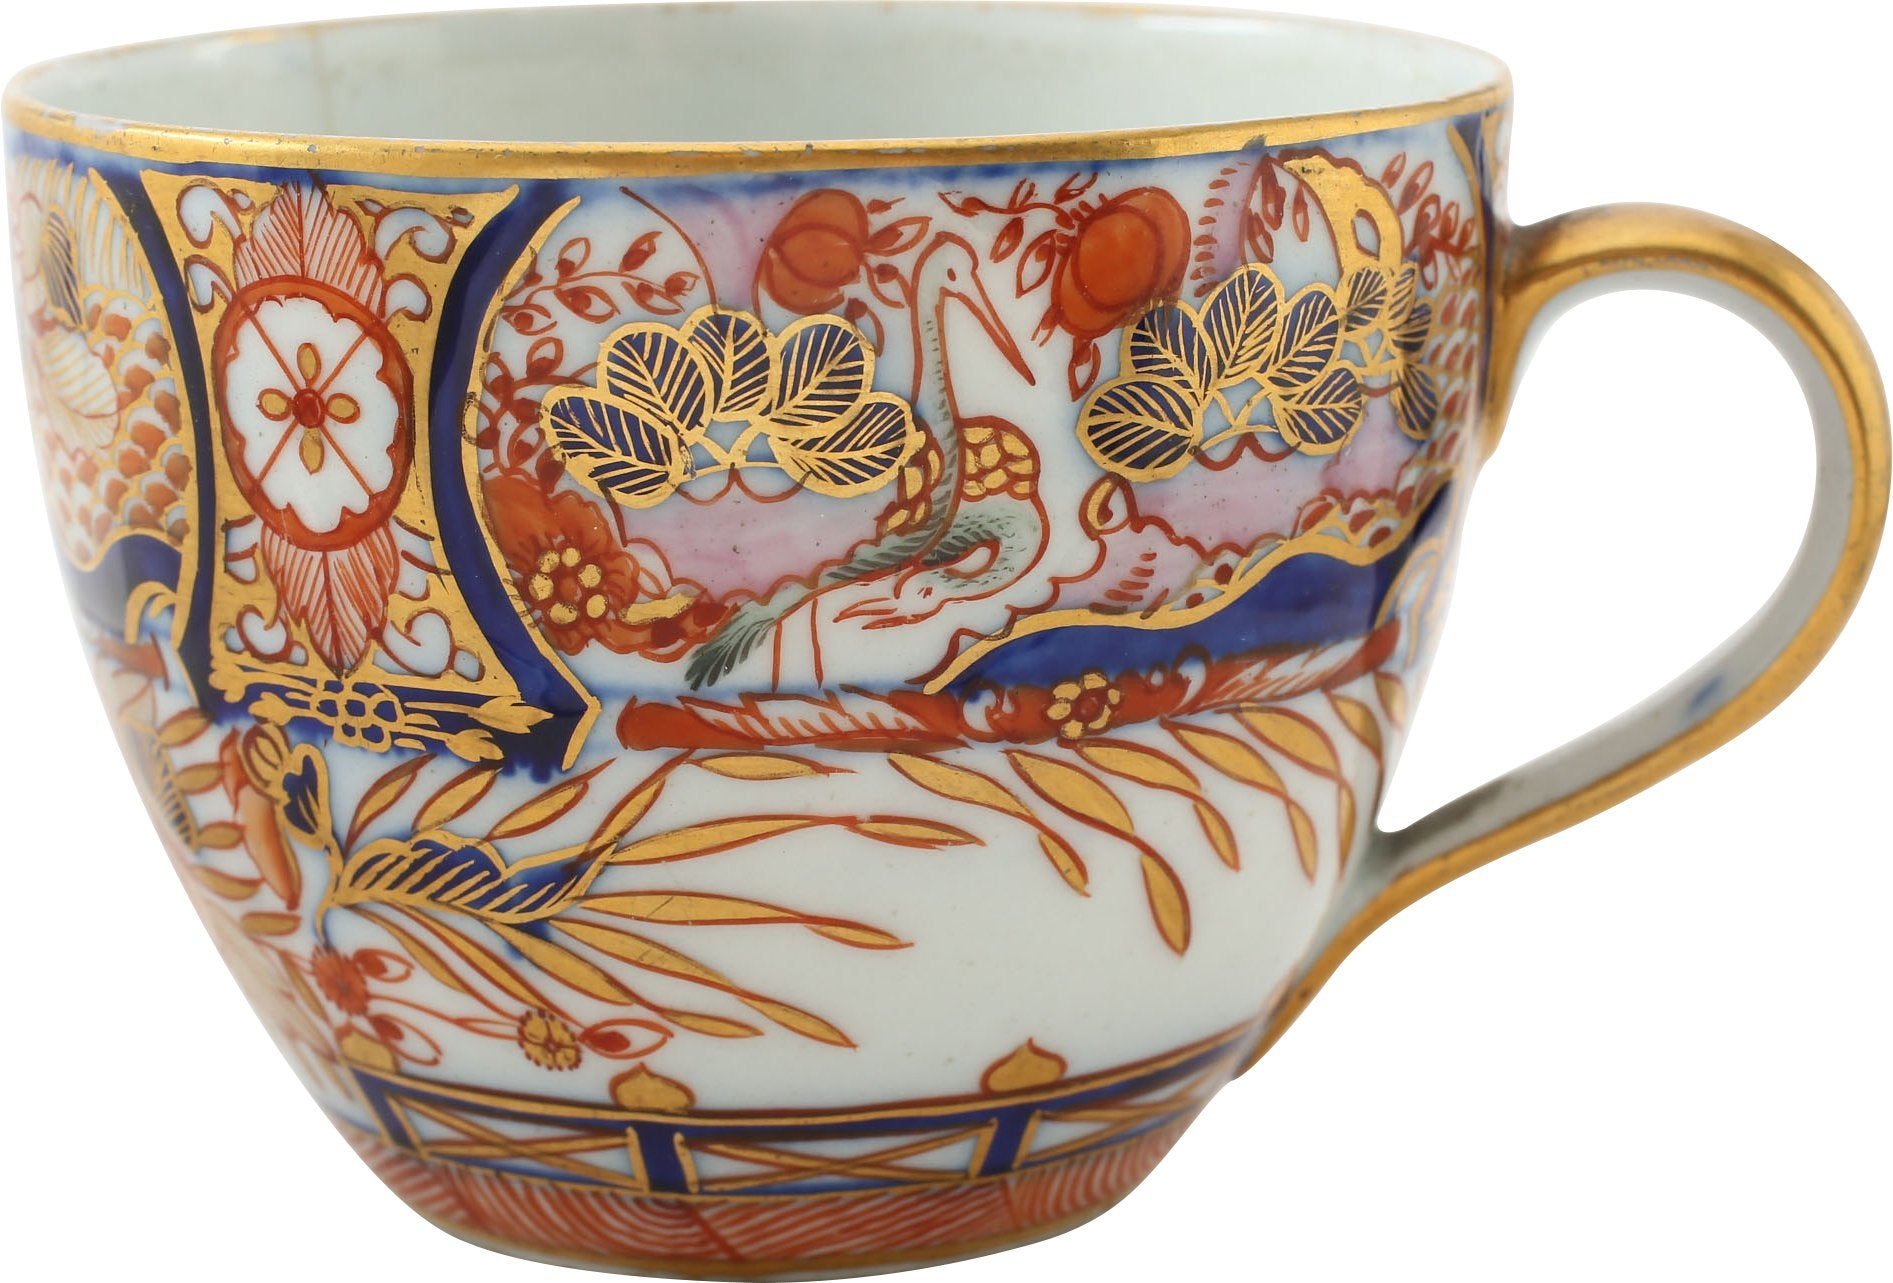 GRAINGER (WORCESTER) PORCELAIN TEA CUP C.1807 - Fagan Arms